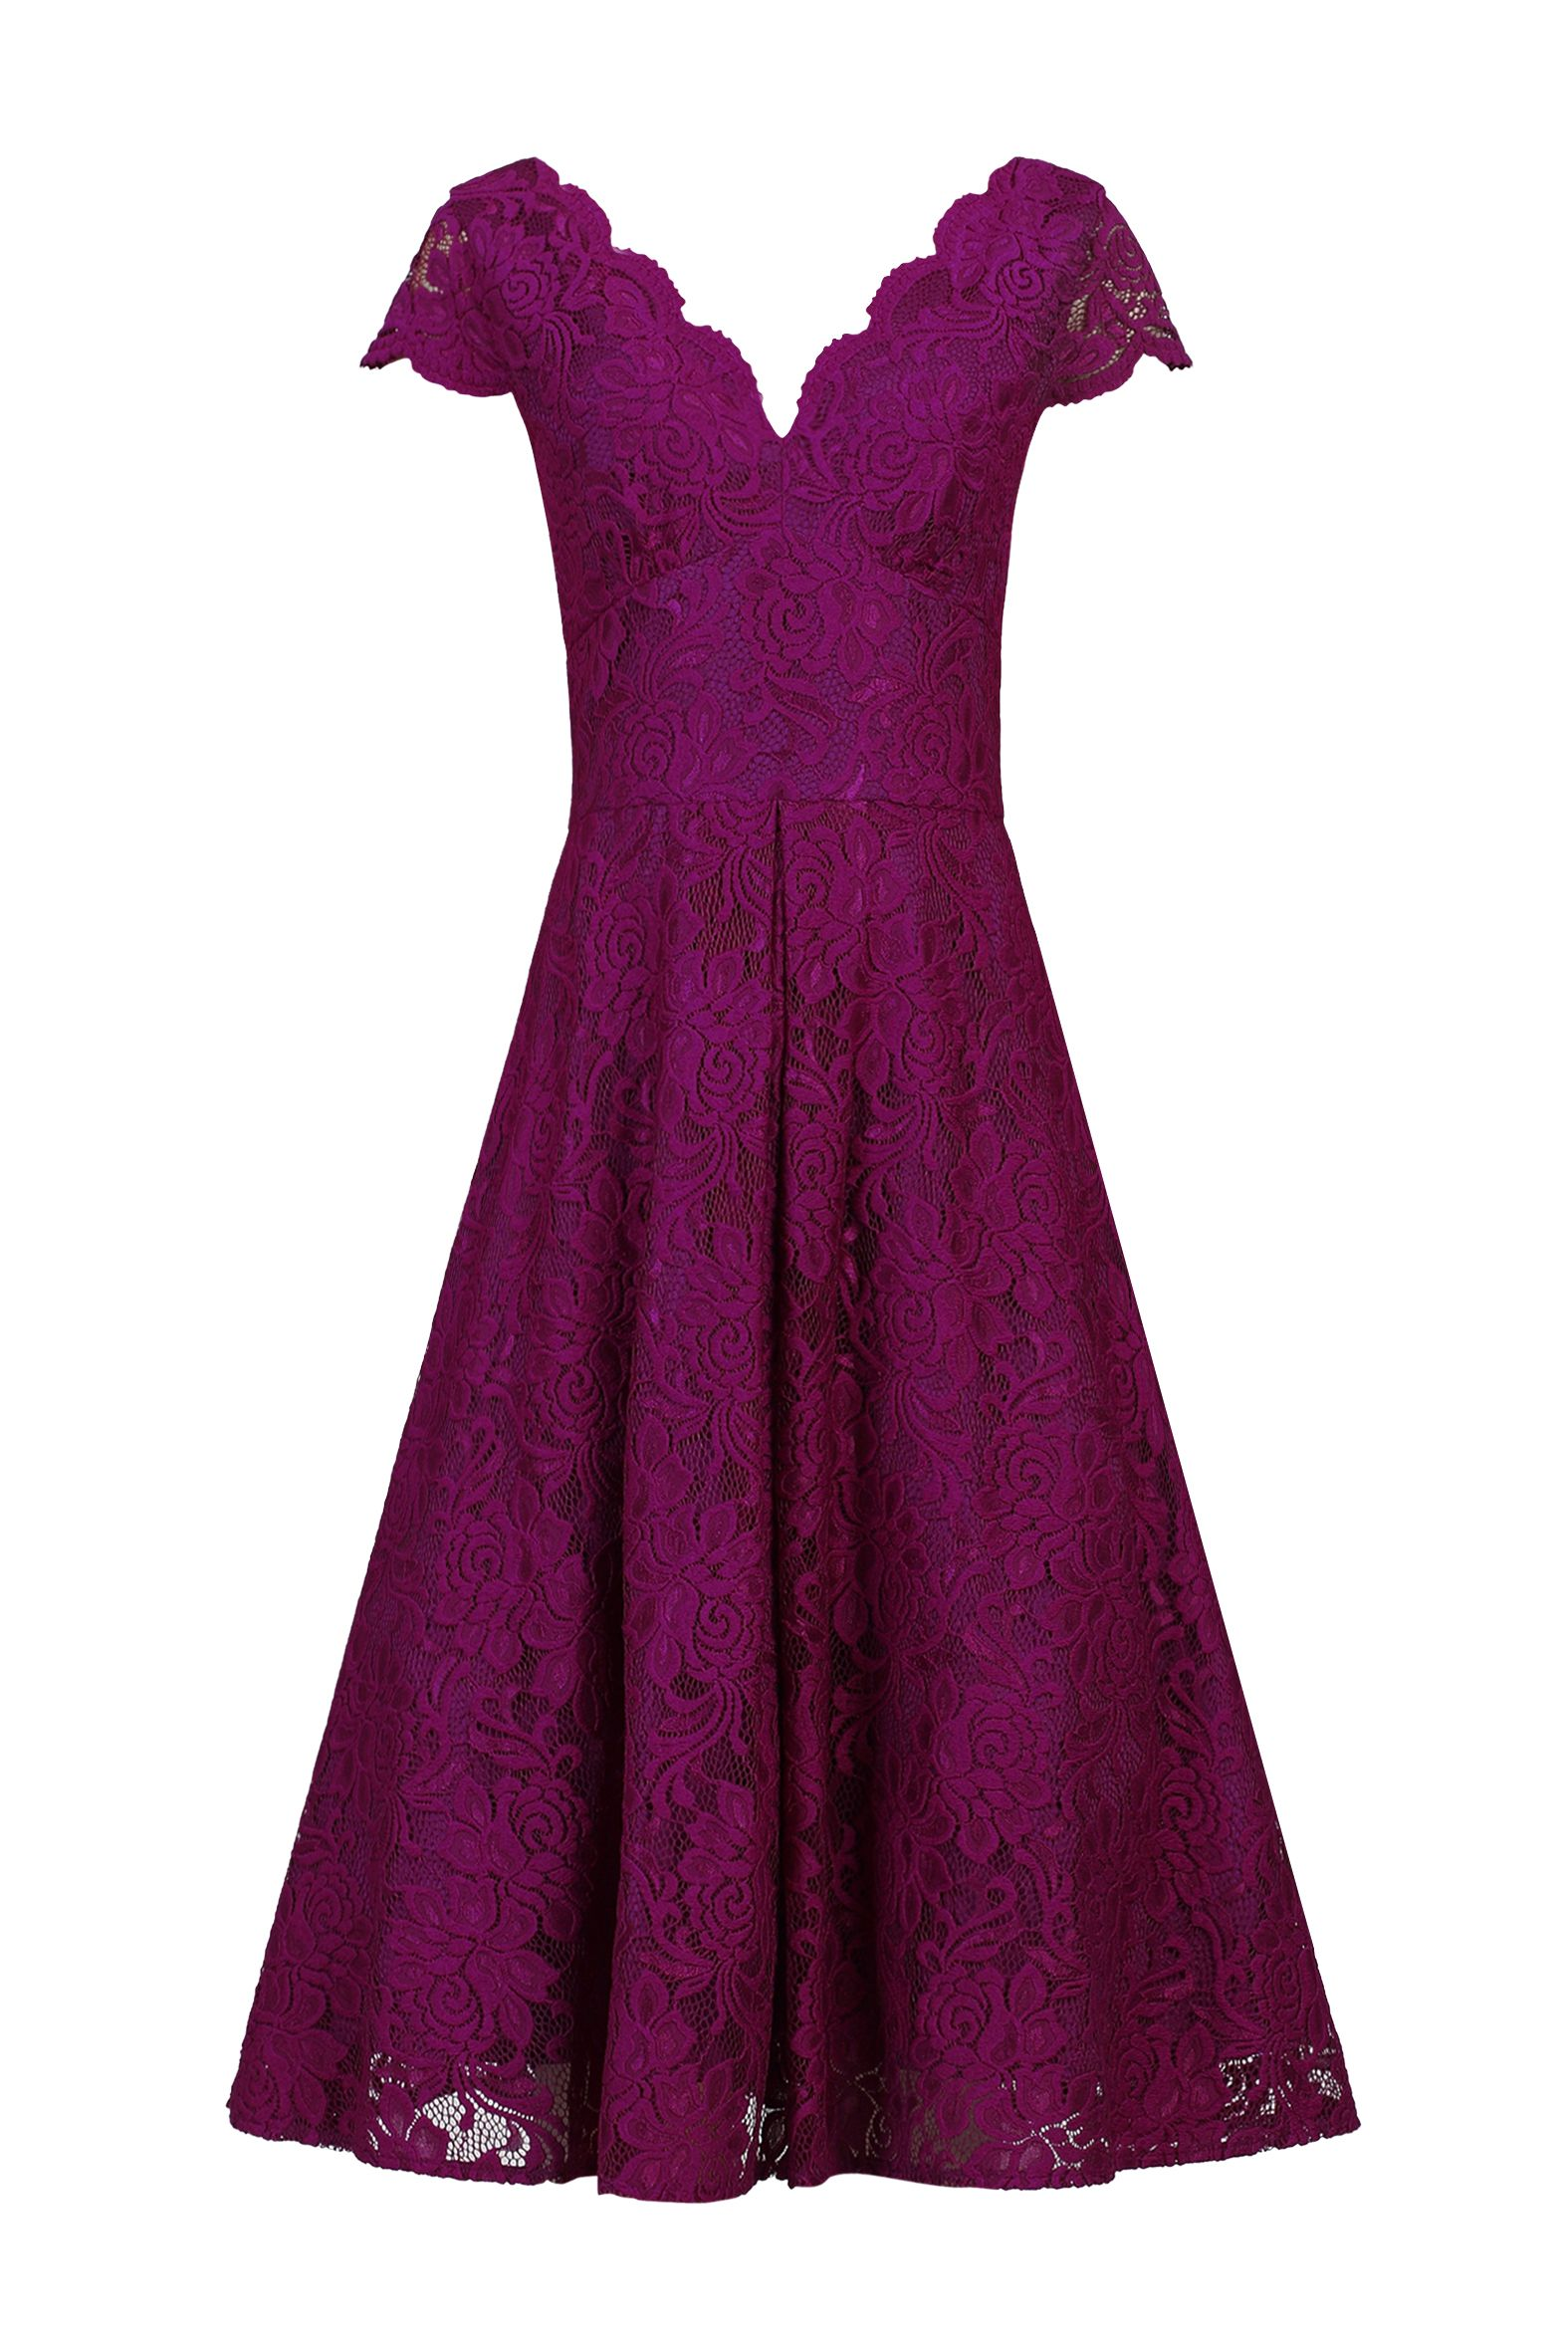 Jolie Moi Cap Sleeve Scalloped Lace Dress, Dark Purple